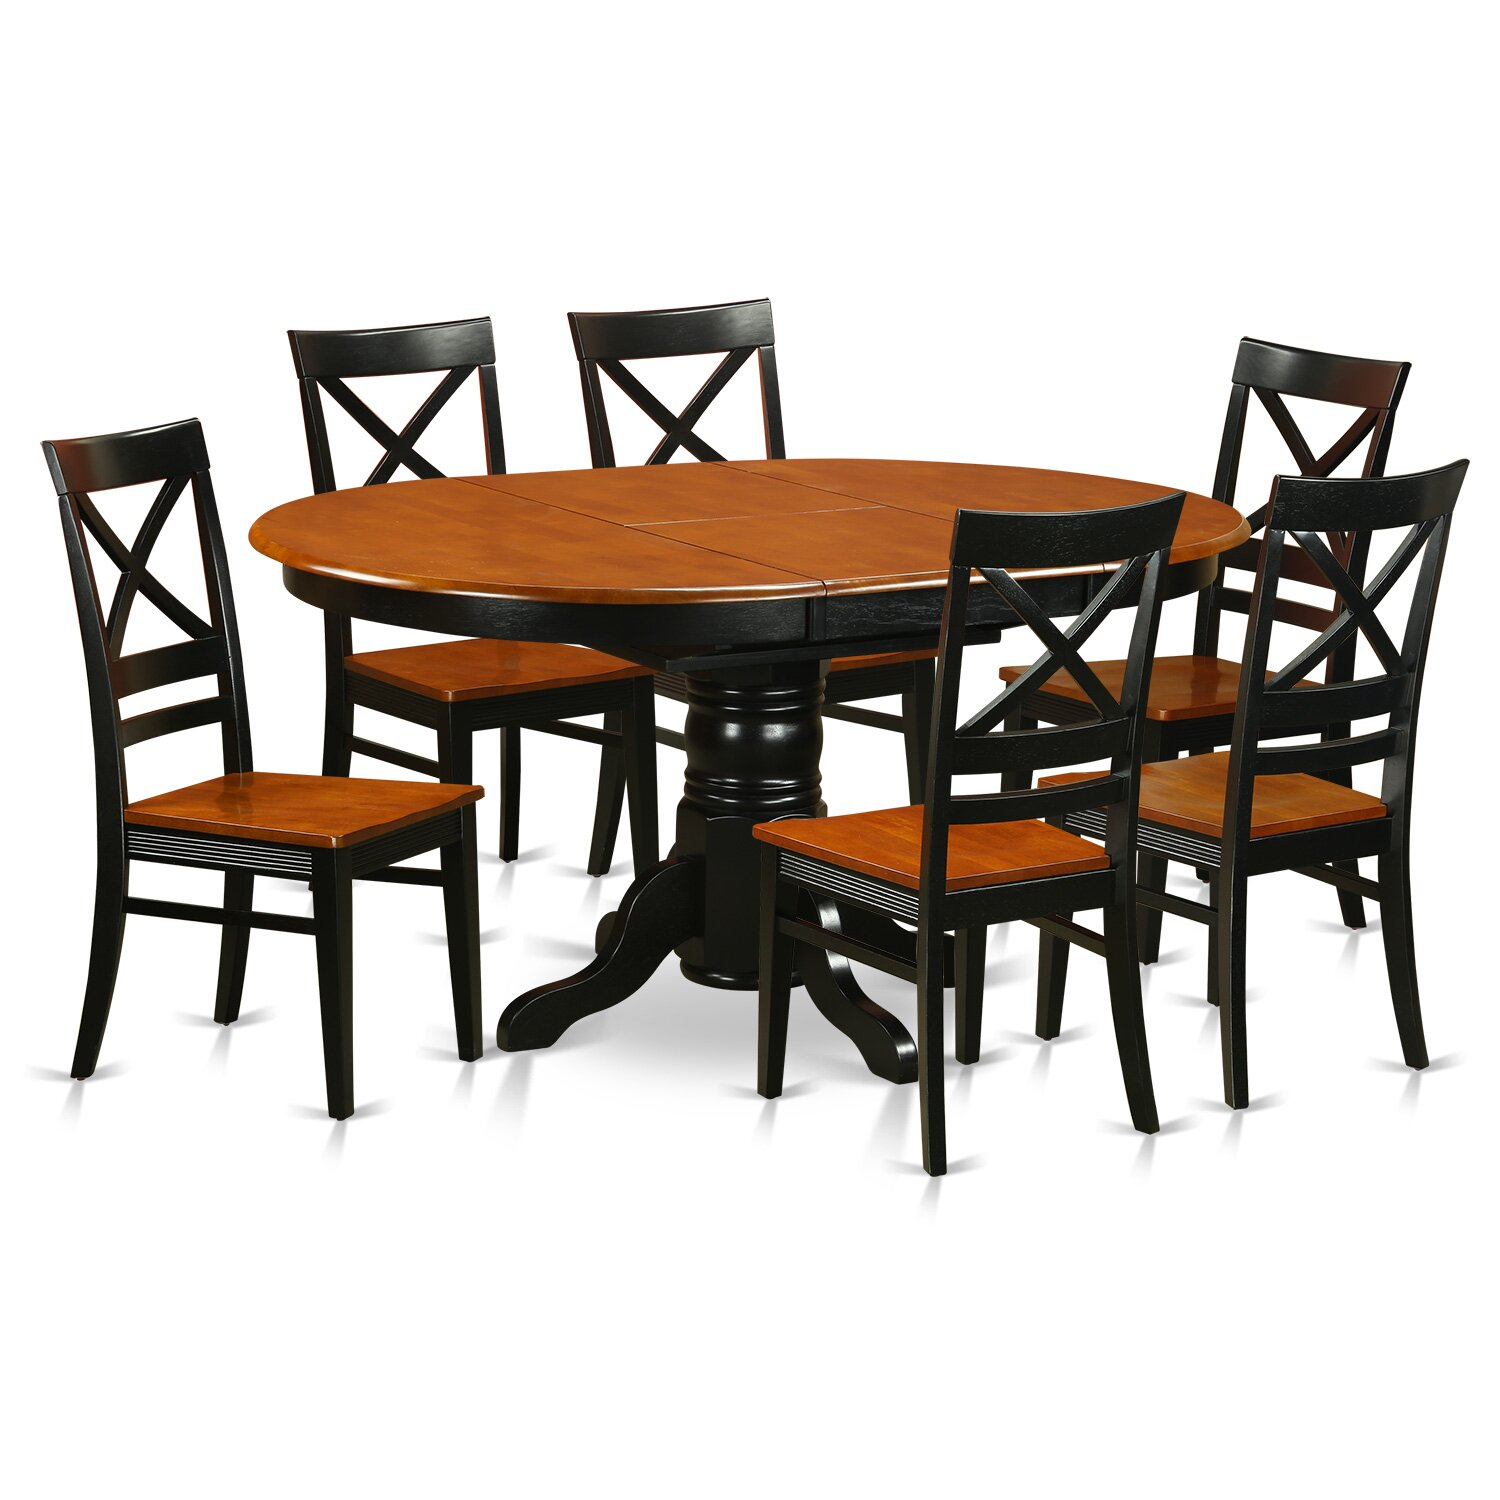 Wooden Importers Avon 7 Piece Dining Set